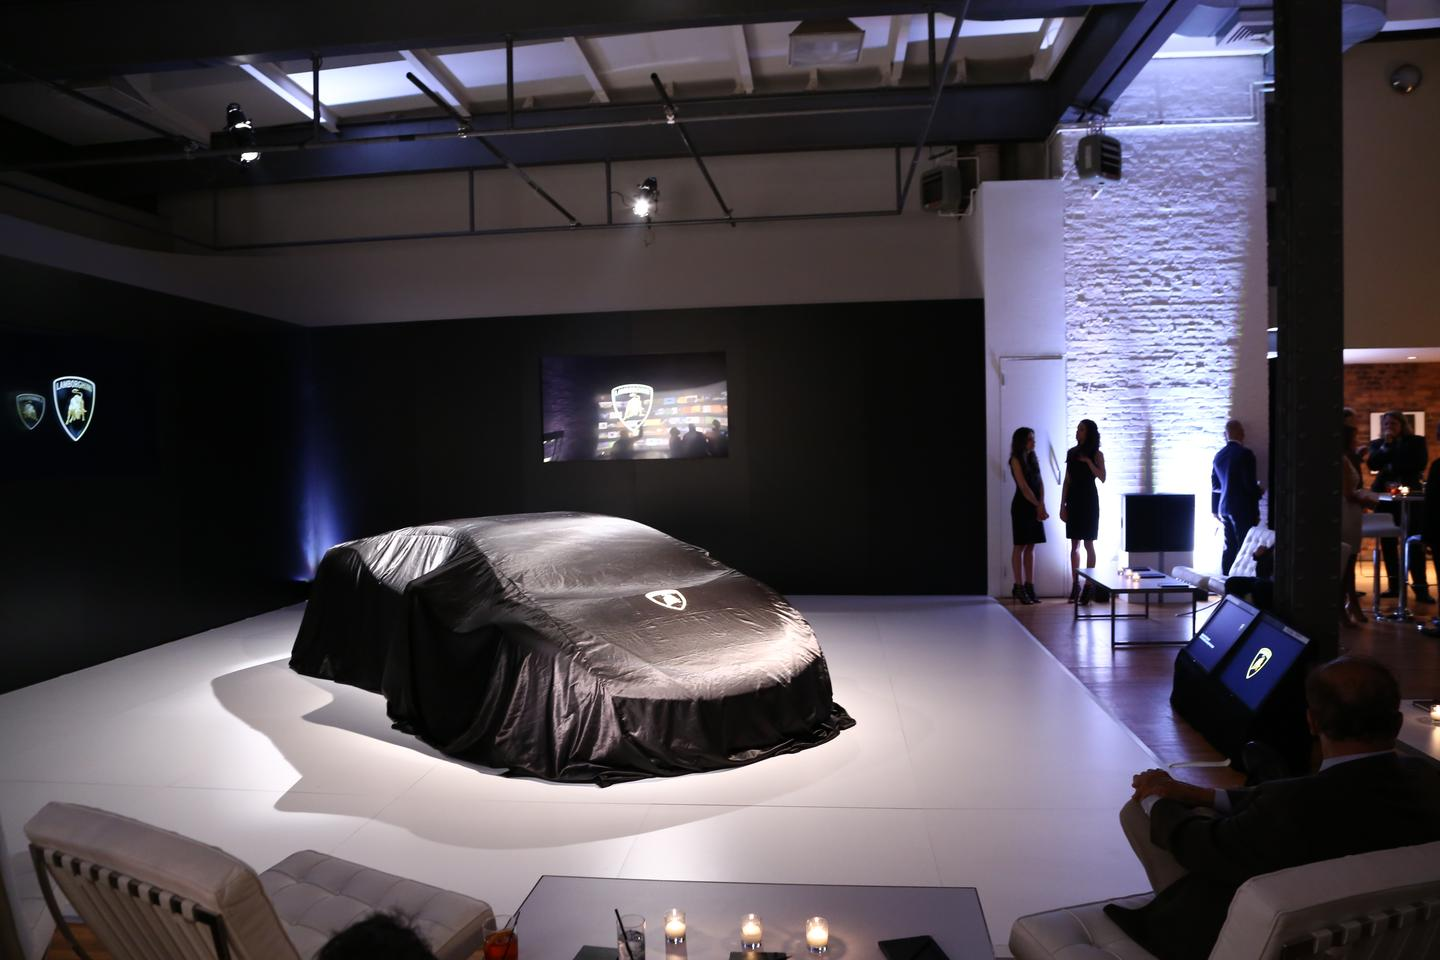 The new Huracán prior to its unveiling at a private event in New York City last week (Photo: Angus MacKenzie/Gizmag.com)